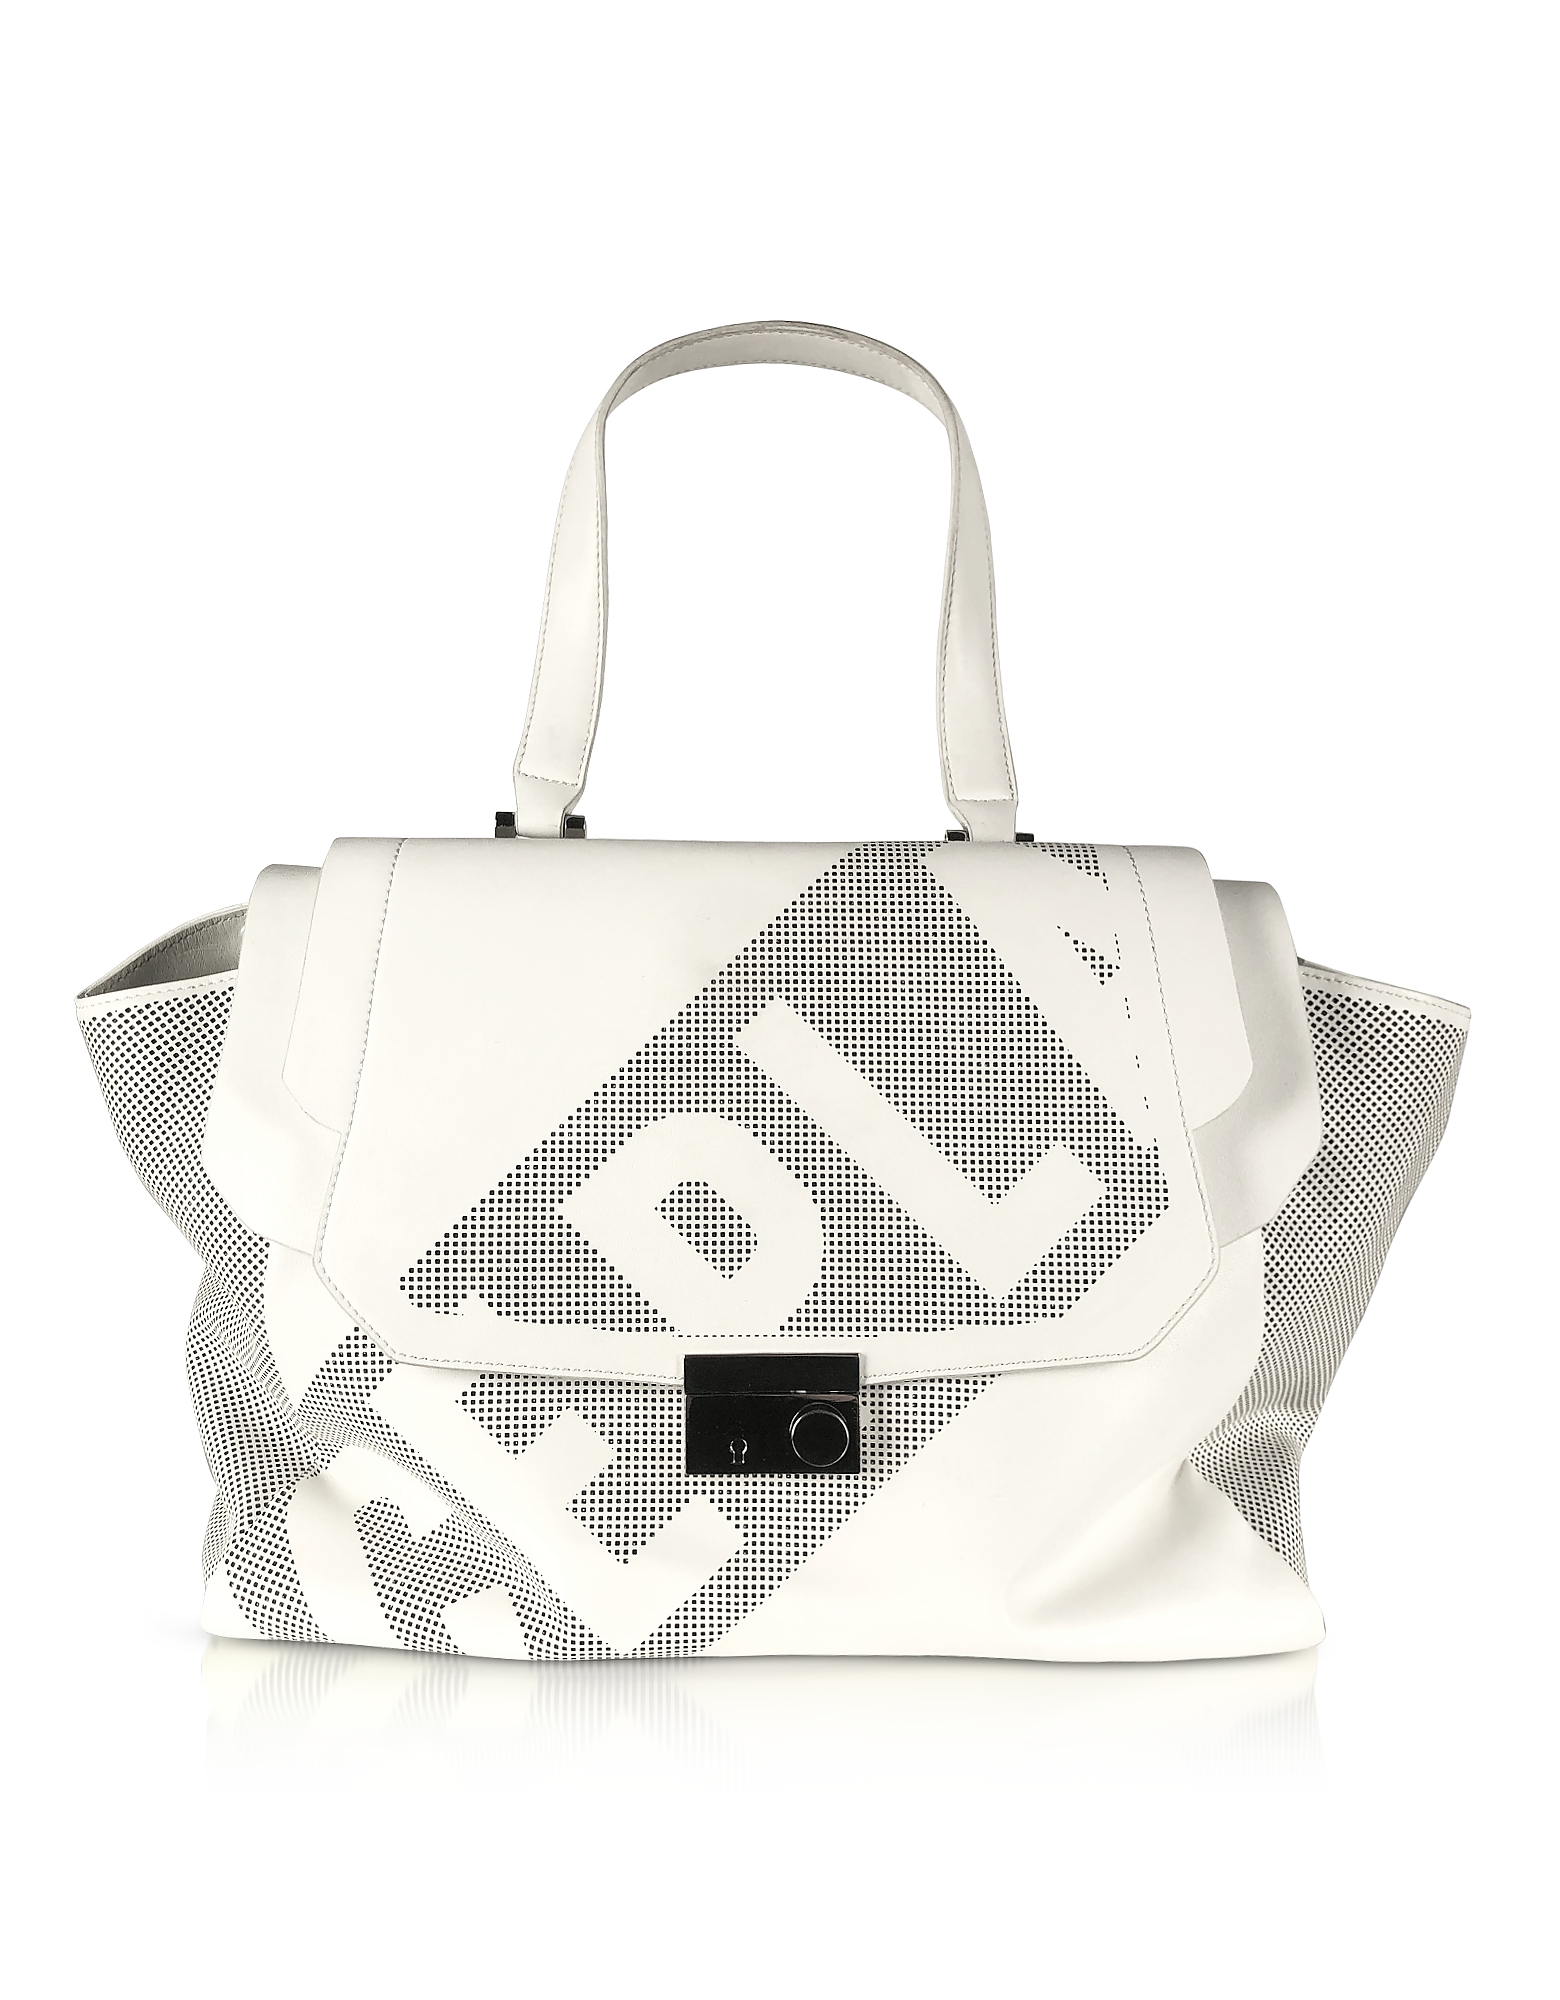 Ice Play Designer Handbags, Black & White Signature Satchel Bag